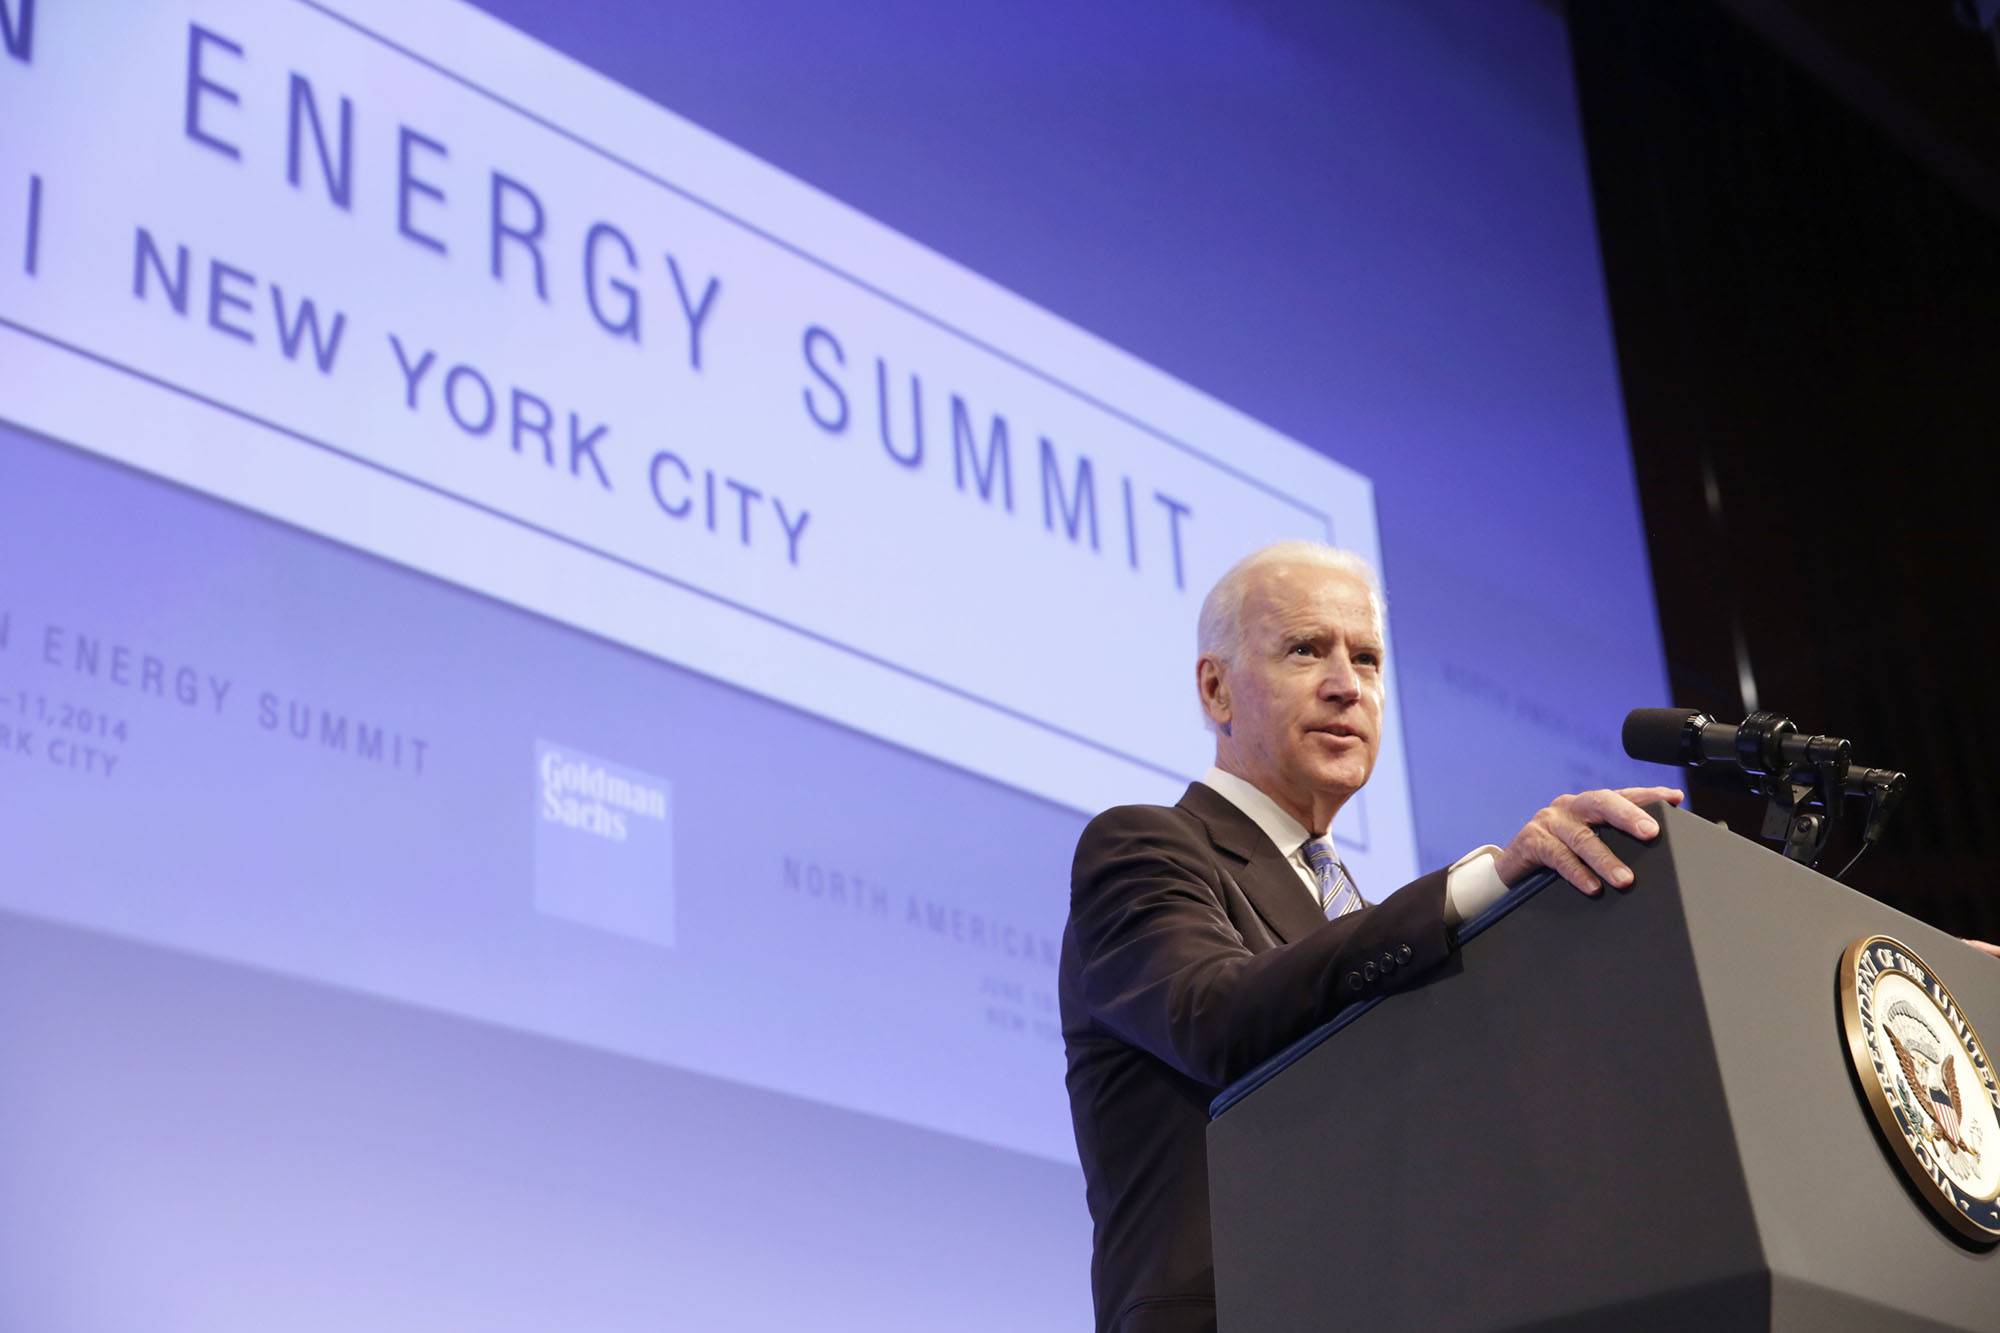 Vice President Biden delivers remarks at the North American Energy Summit in New York City